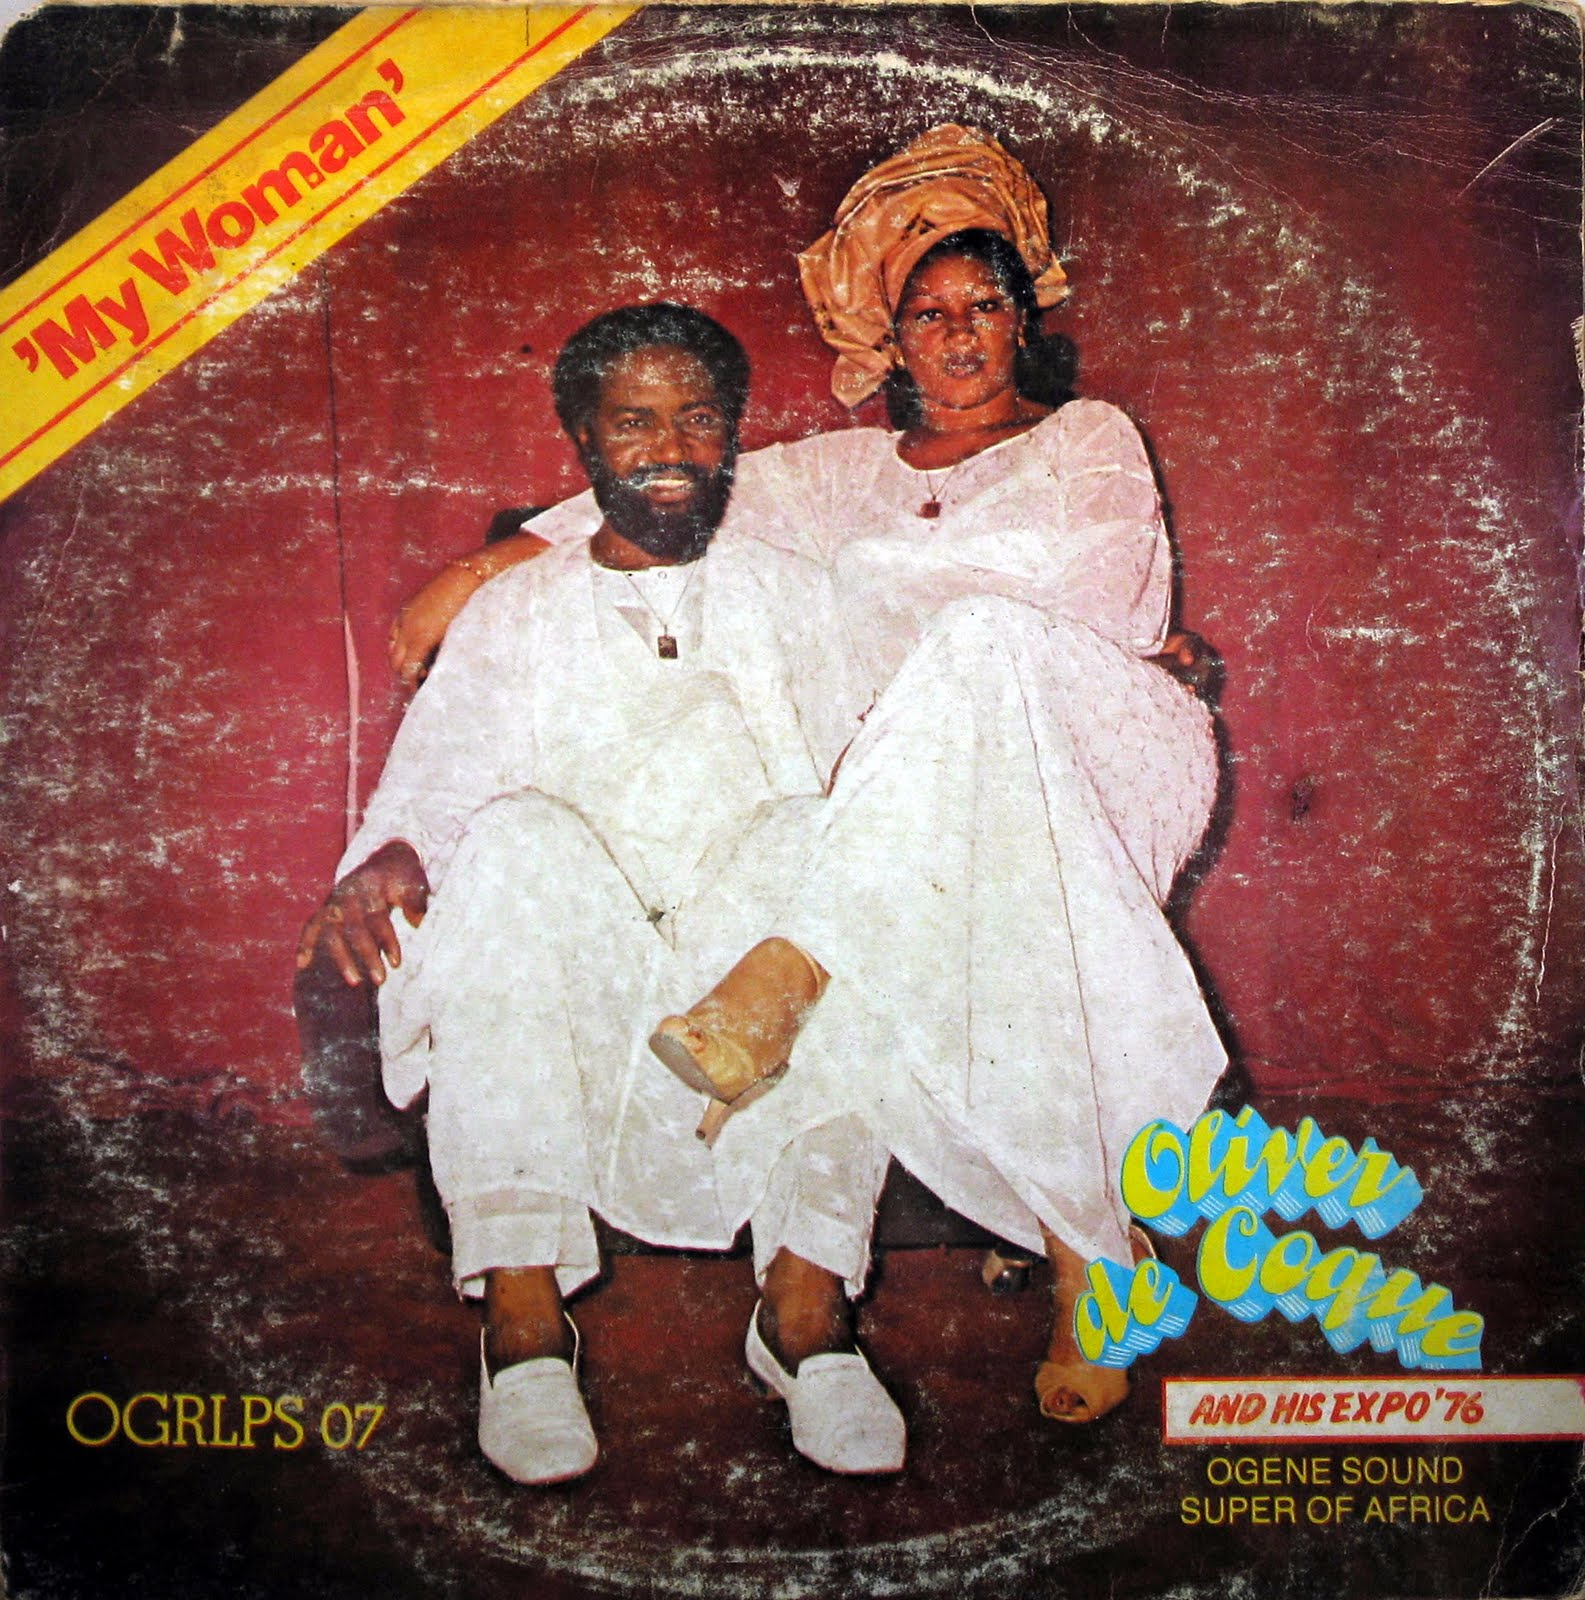 Oliver De Coque And His Expo '76 Ogene Sound Super Of Africa – My Woman 80's NIGERIAN Highlife Folk Music ALBUM LP